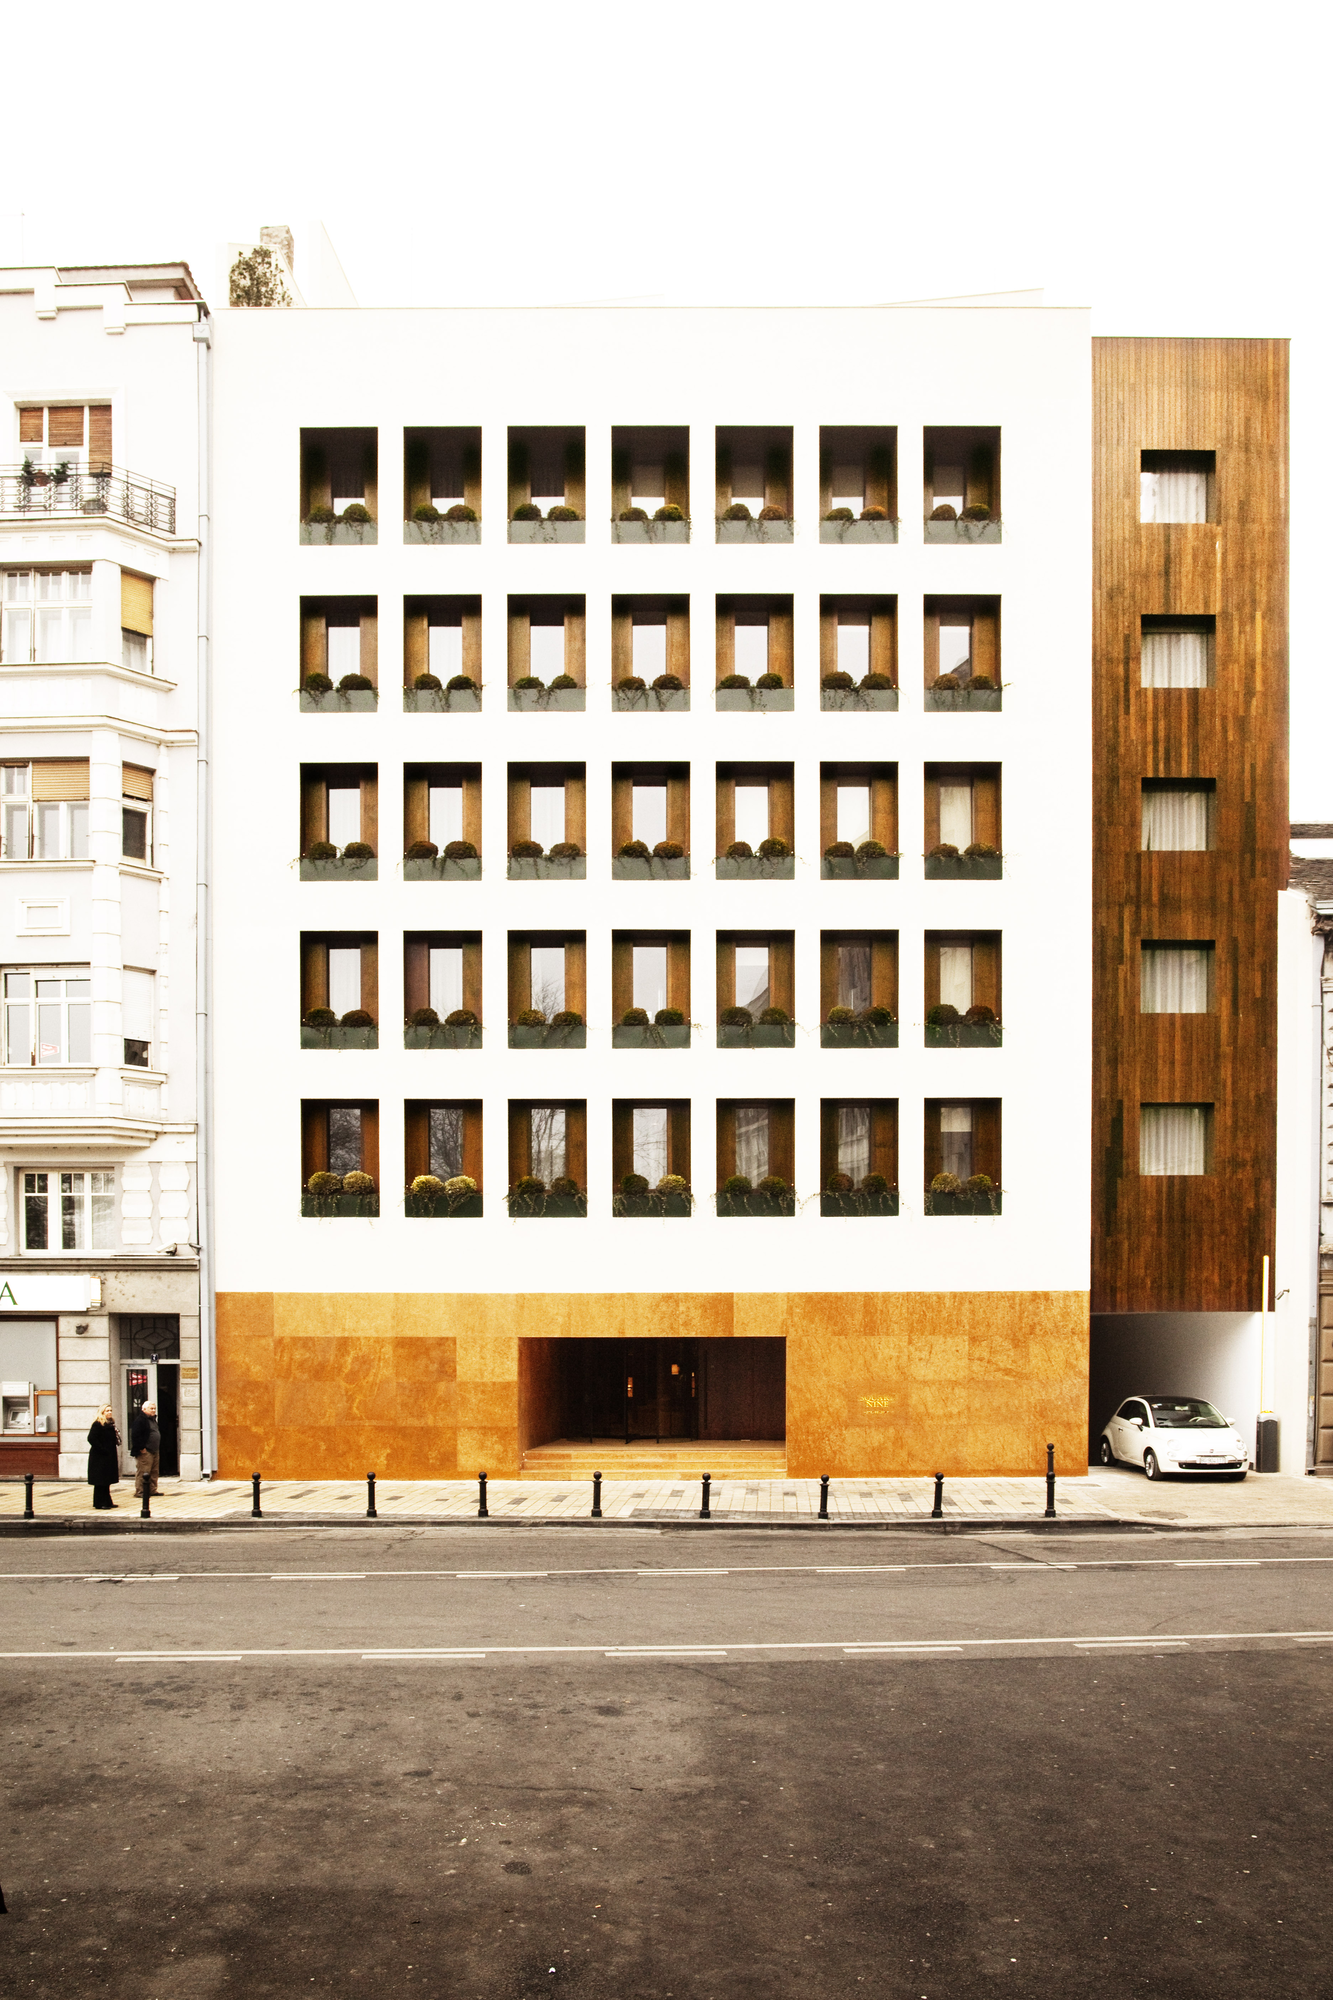 Square Nine Hotel / Isay Weinfeld, © Matthieu Salvaing